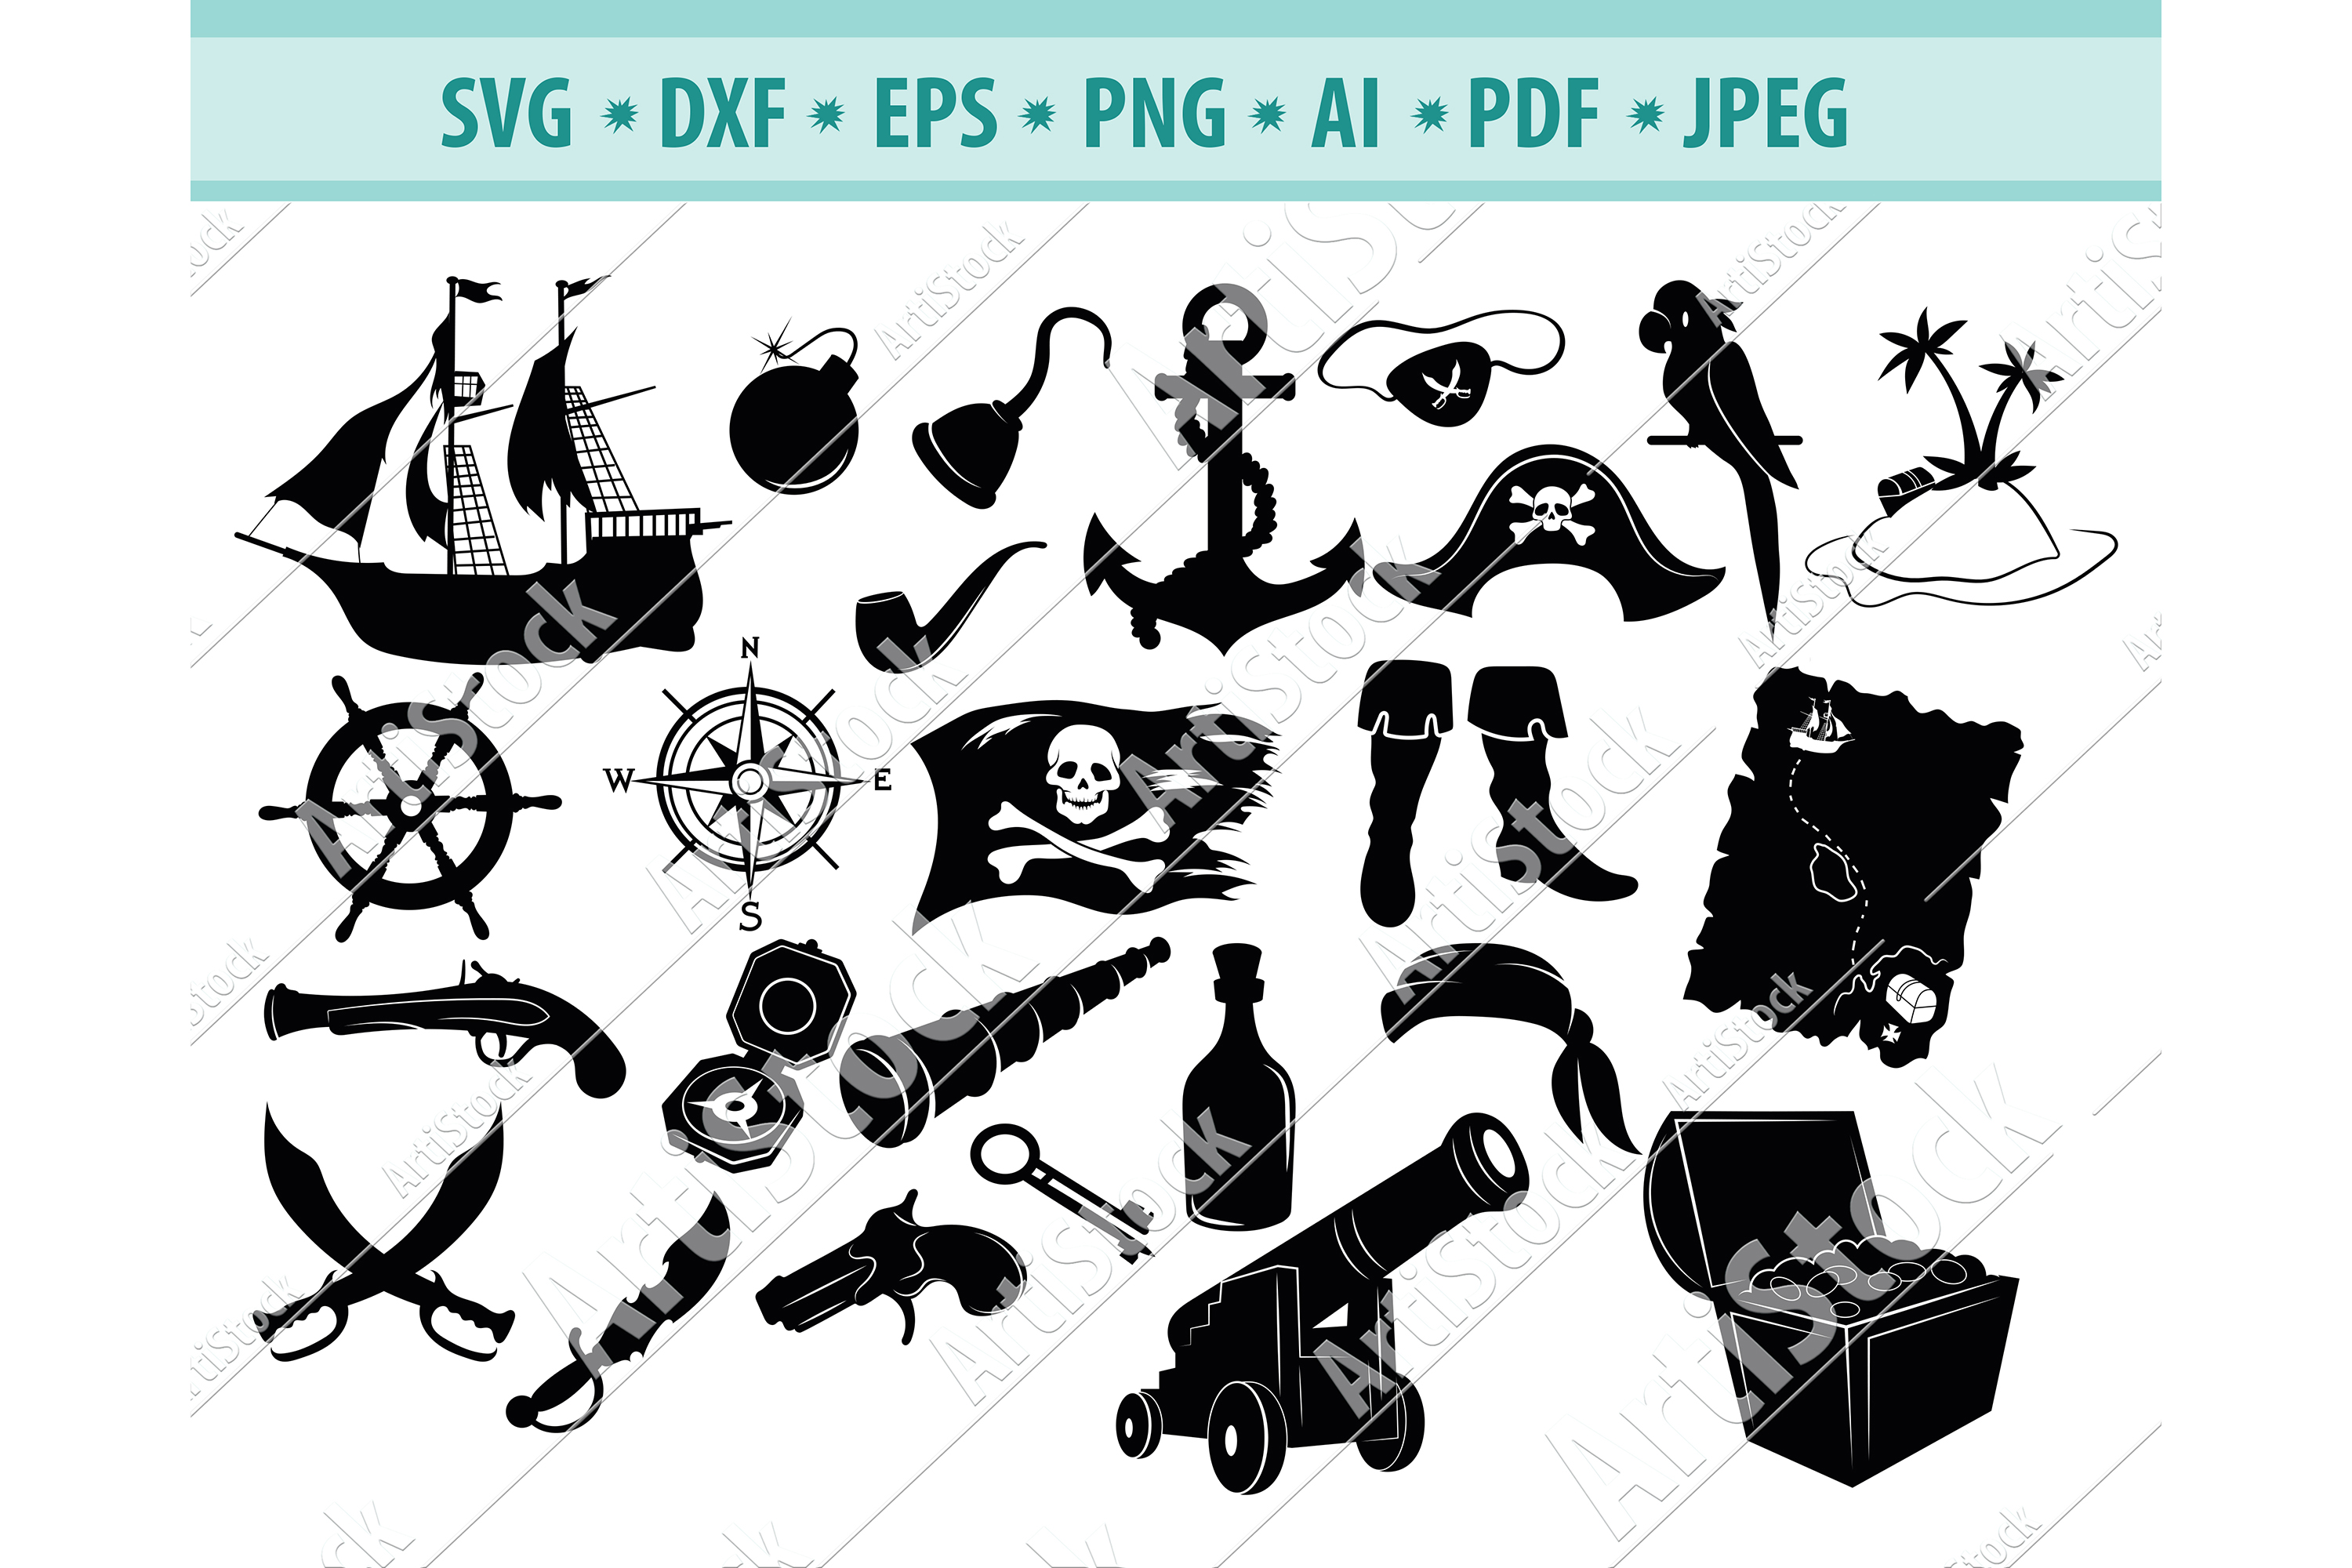 Pirate SVG, Pirate Silhouette Png, Pirate Clipart, Dxf, Eps example image 1